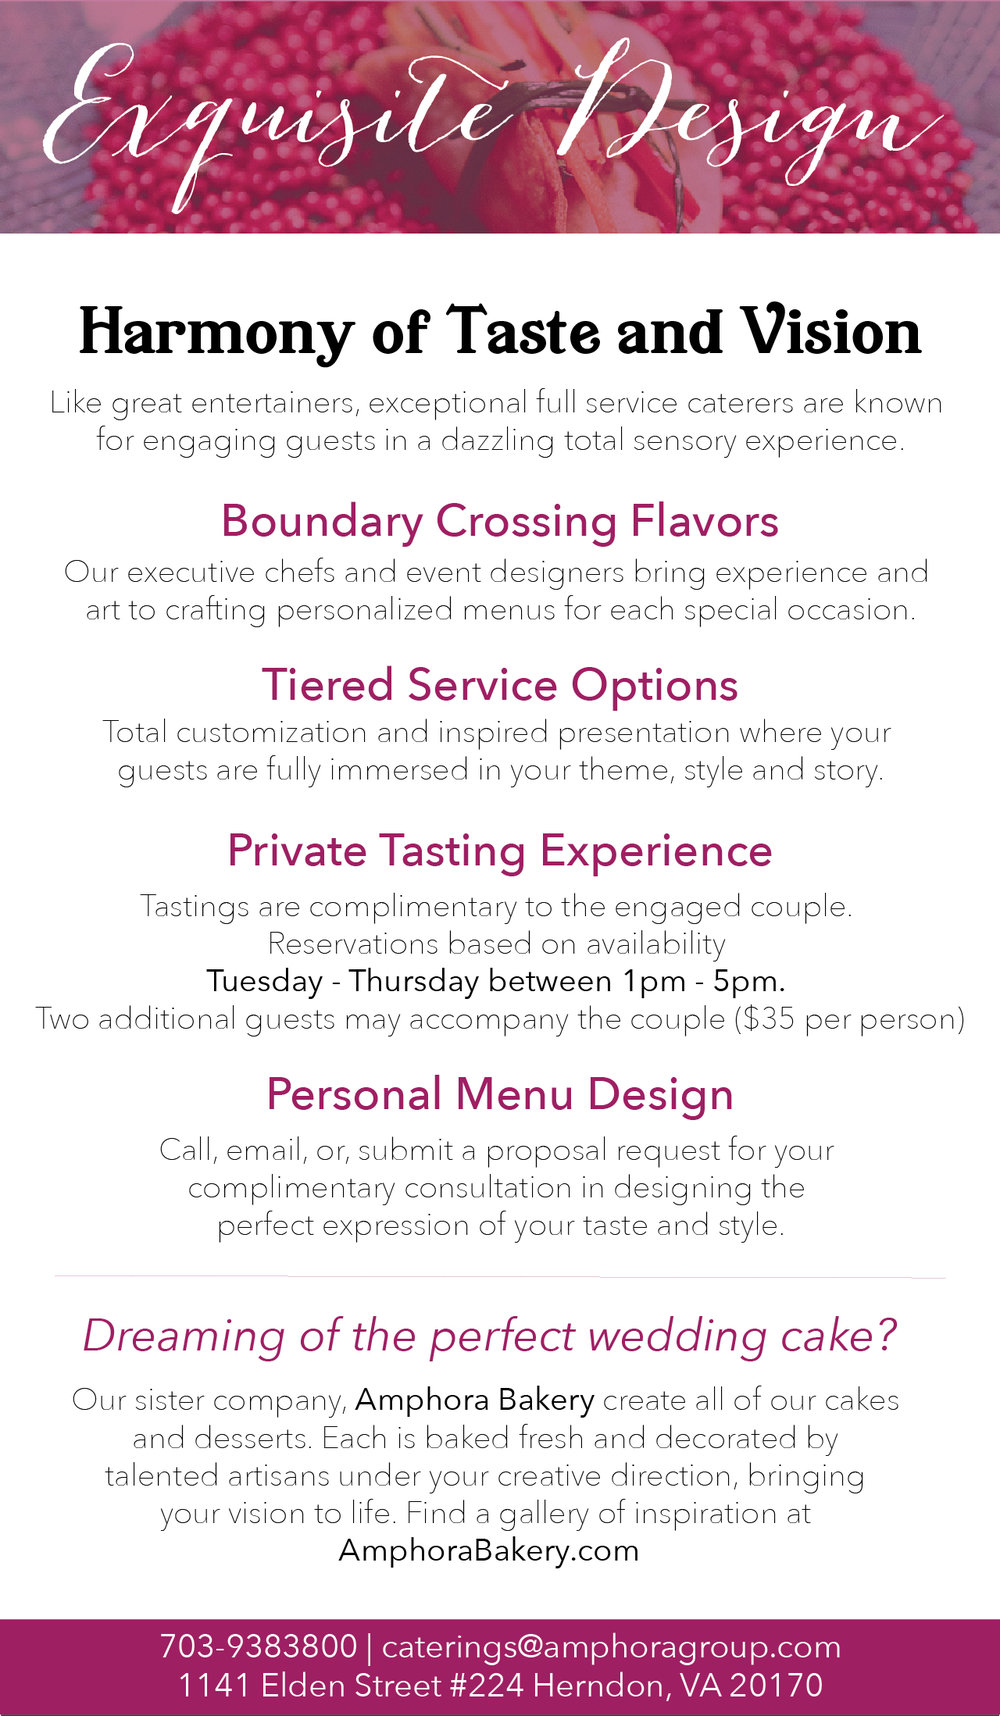 Amphora Catering Wedding flyer 2018-04.jpg